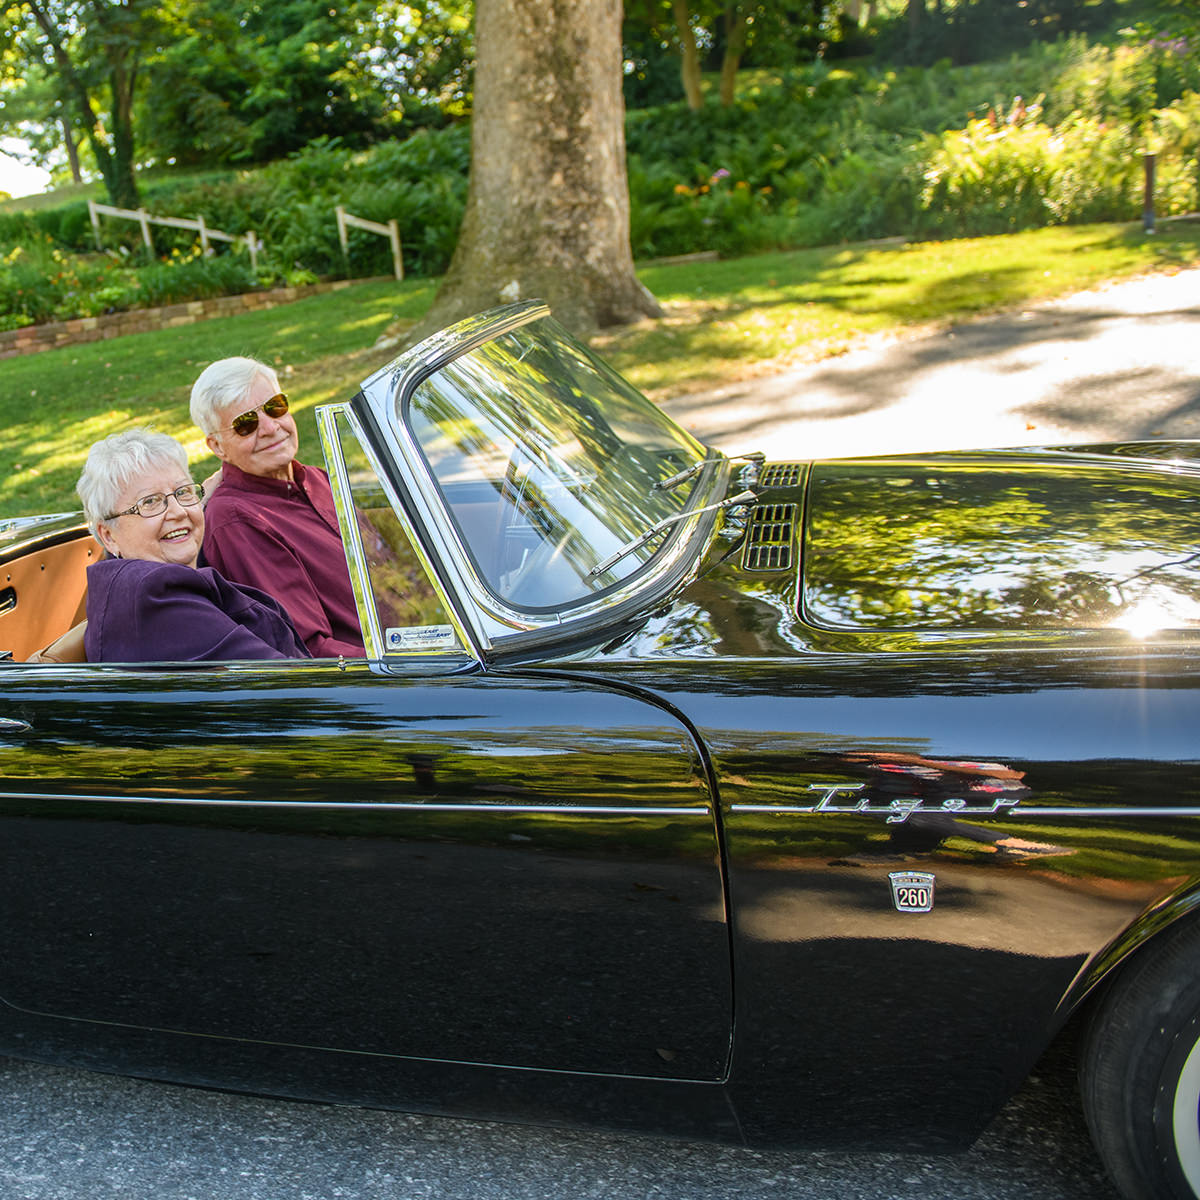 Jim and Jennie Sauer enjoy driving their Sunbeam Tiger on bright, sun-filled days.